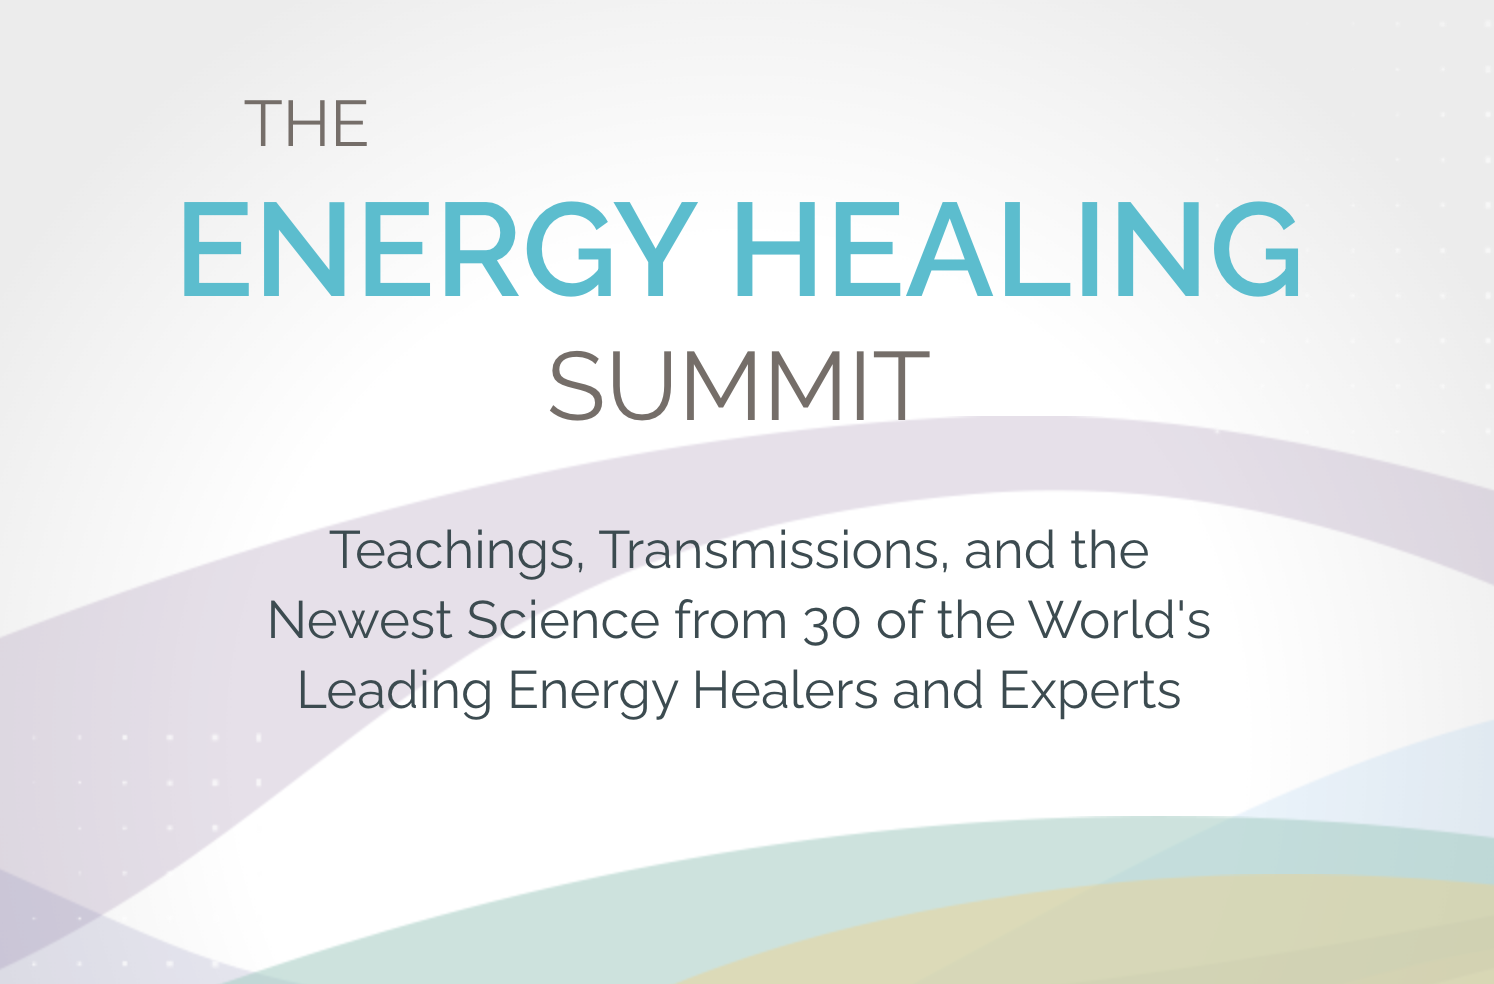 the energy healing summit by sounds true publishing